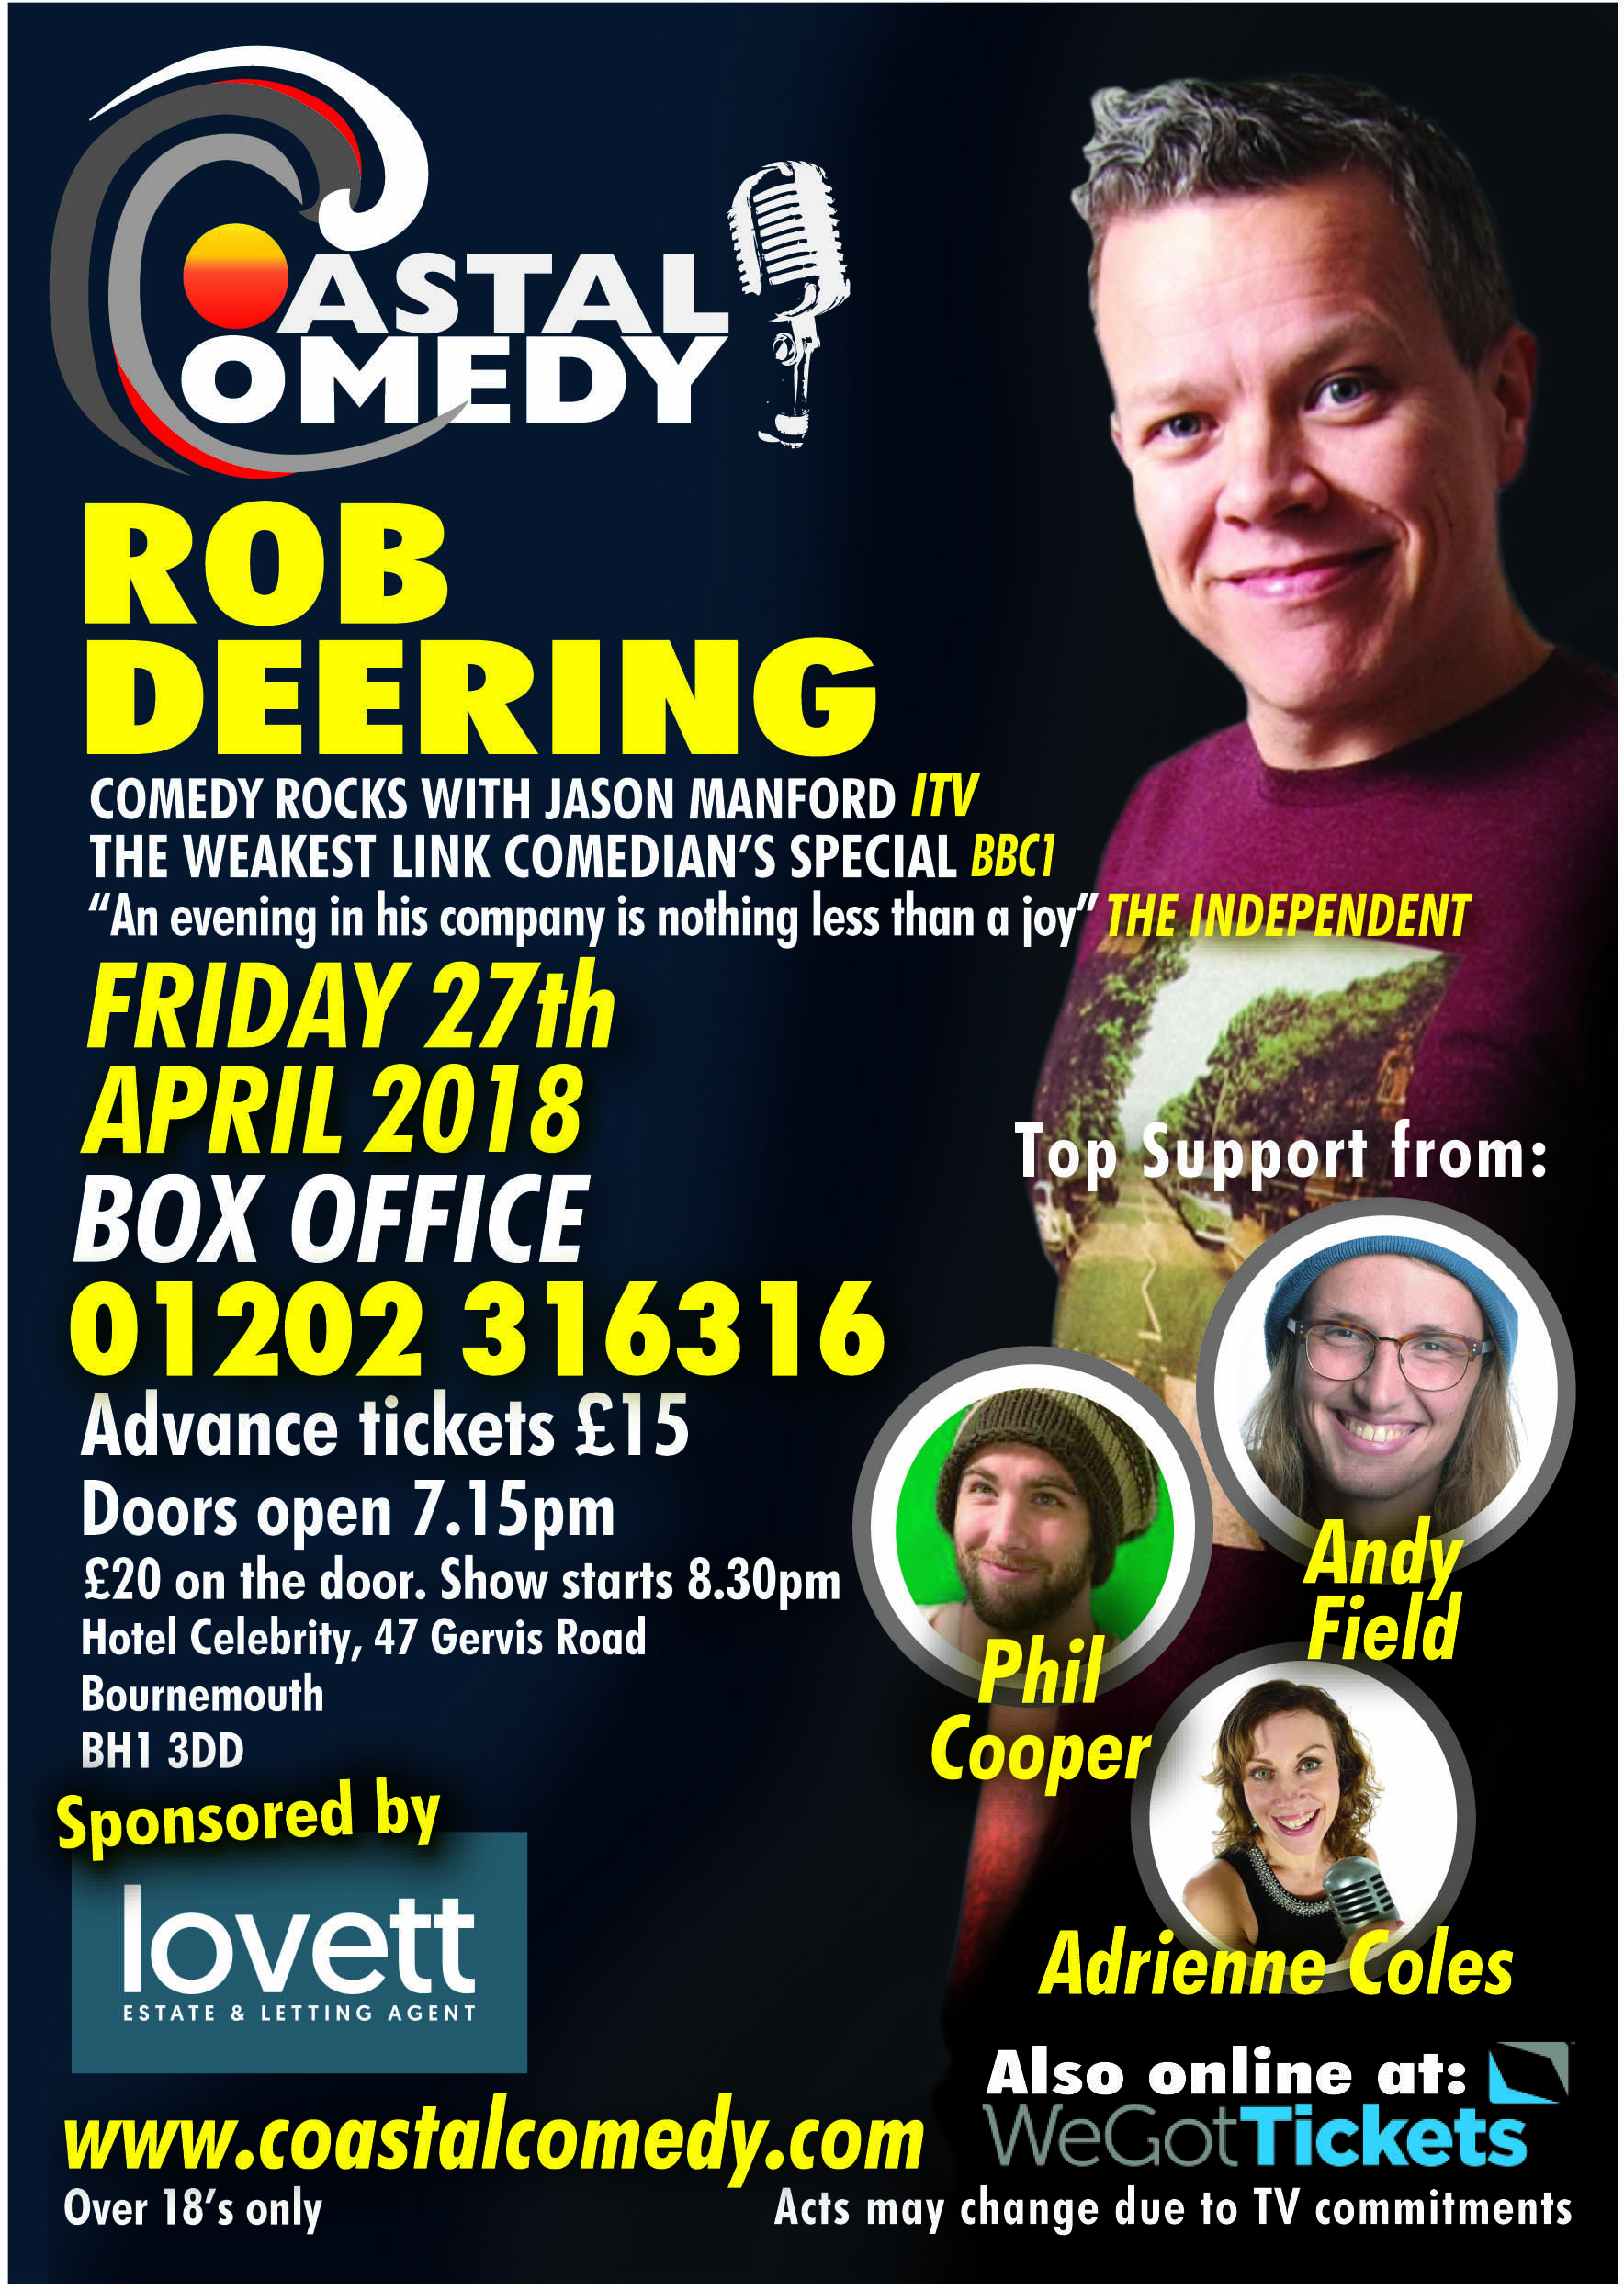 Rob Deering, comedy, comedian, comedienne, nightlife, Bournemouth, Hotel Celebrity, stand-up,